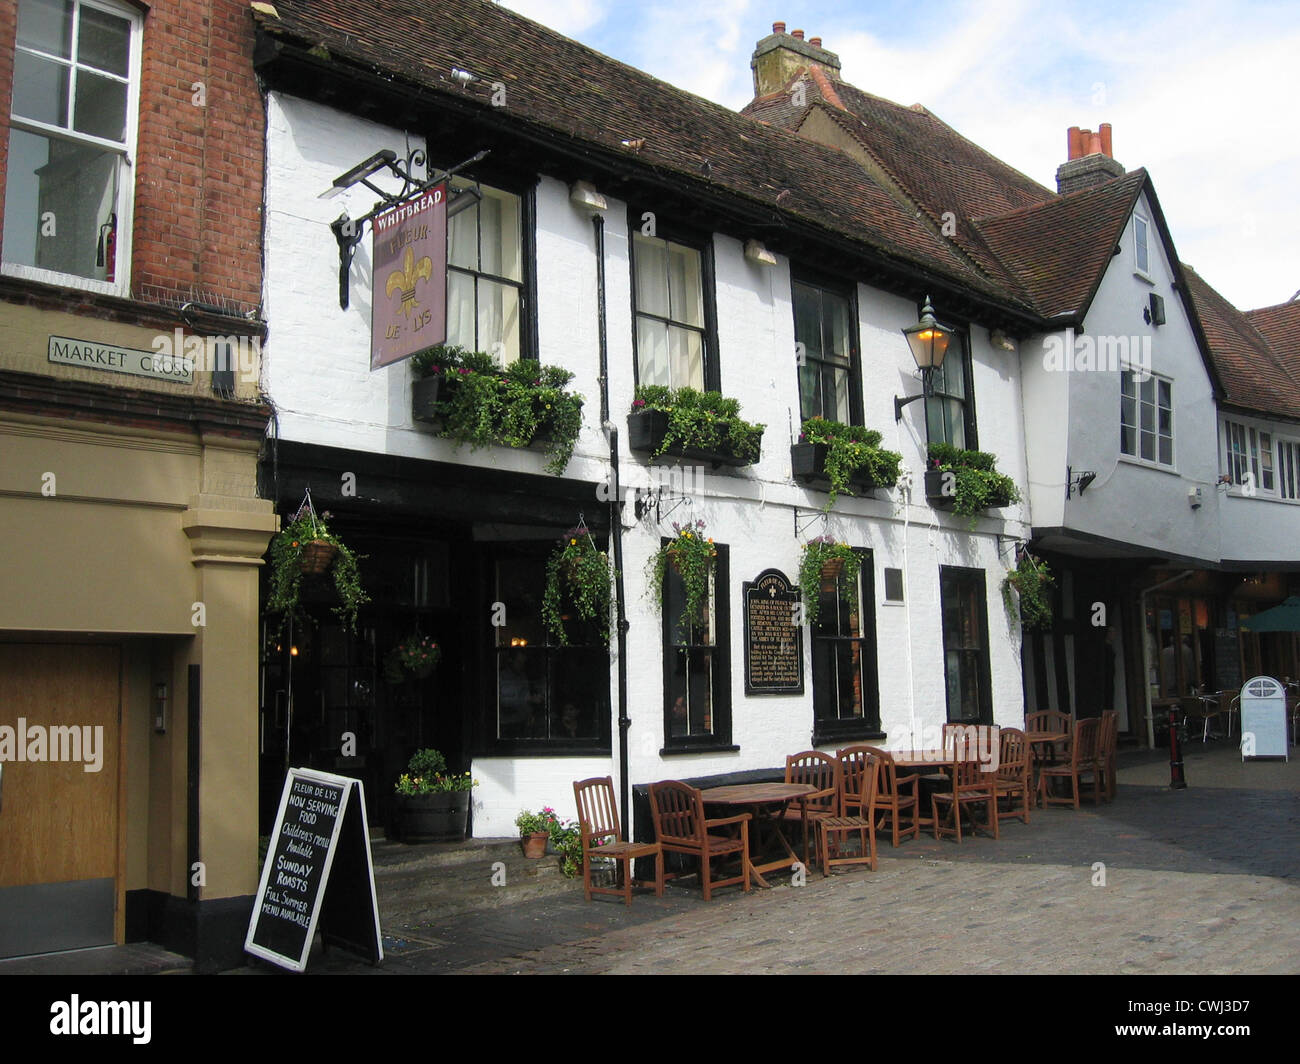 Fleur de Lys, French Row, St Albans, Hertfordshire, England, UK - Stock Image